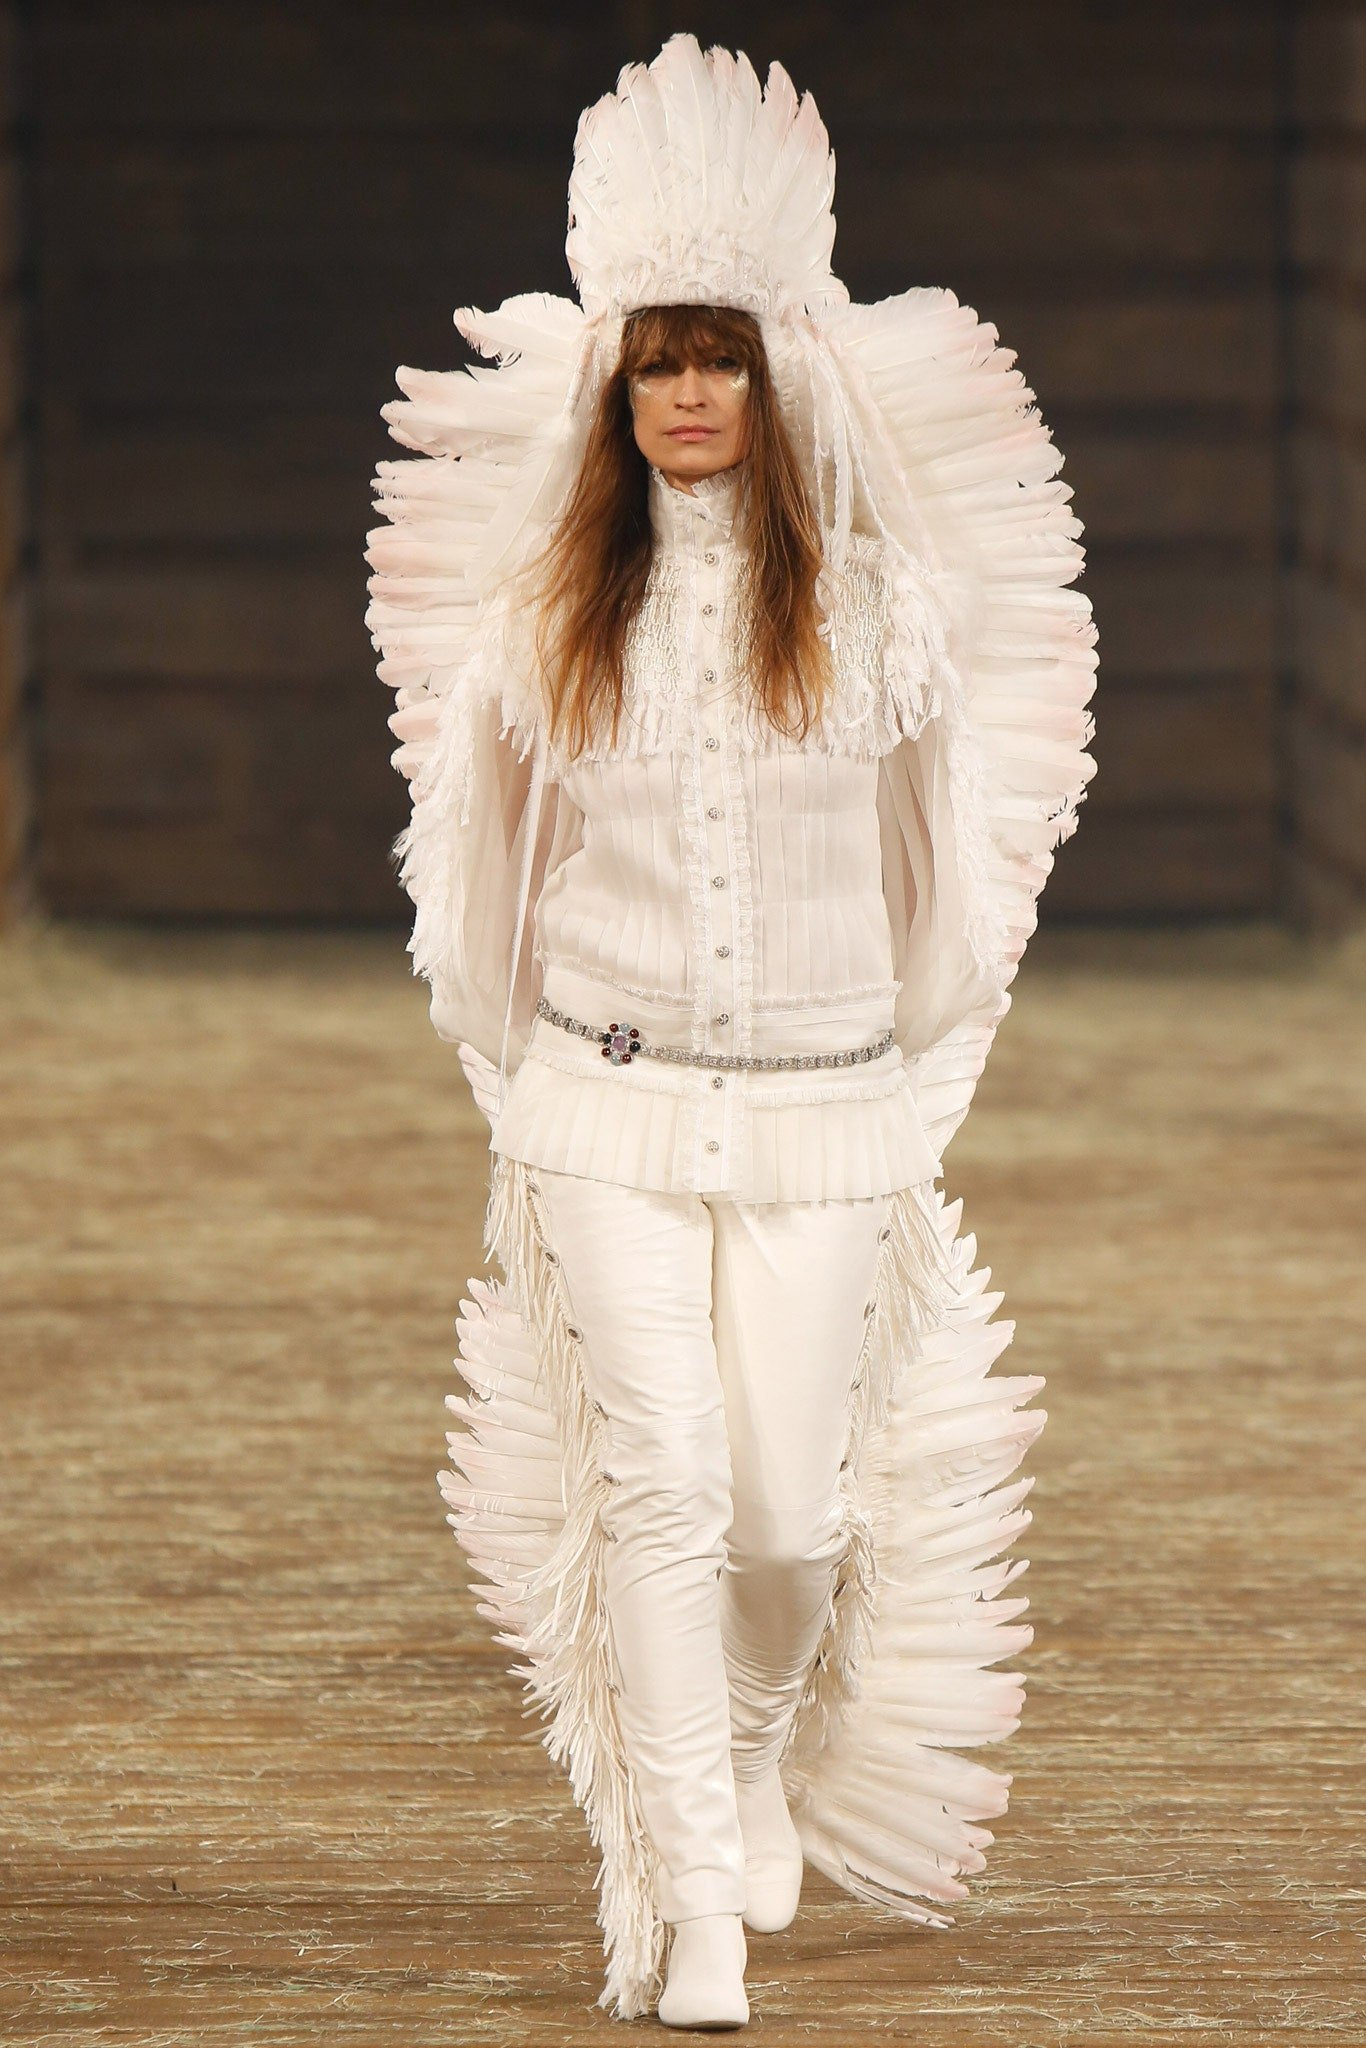 Model Carolin de Maigret walking down the runway in a white outfit and large white feathered headdress